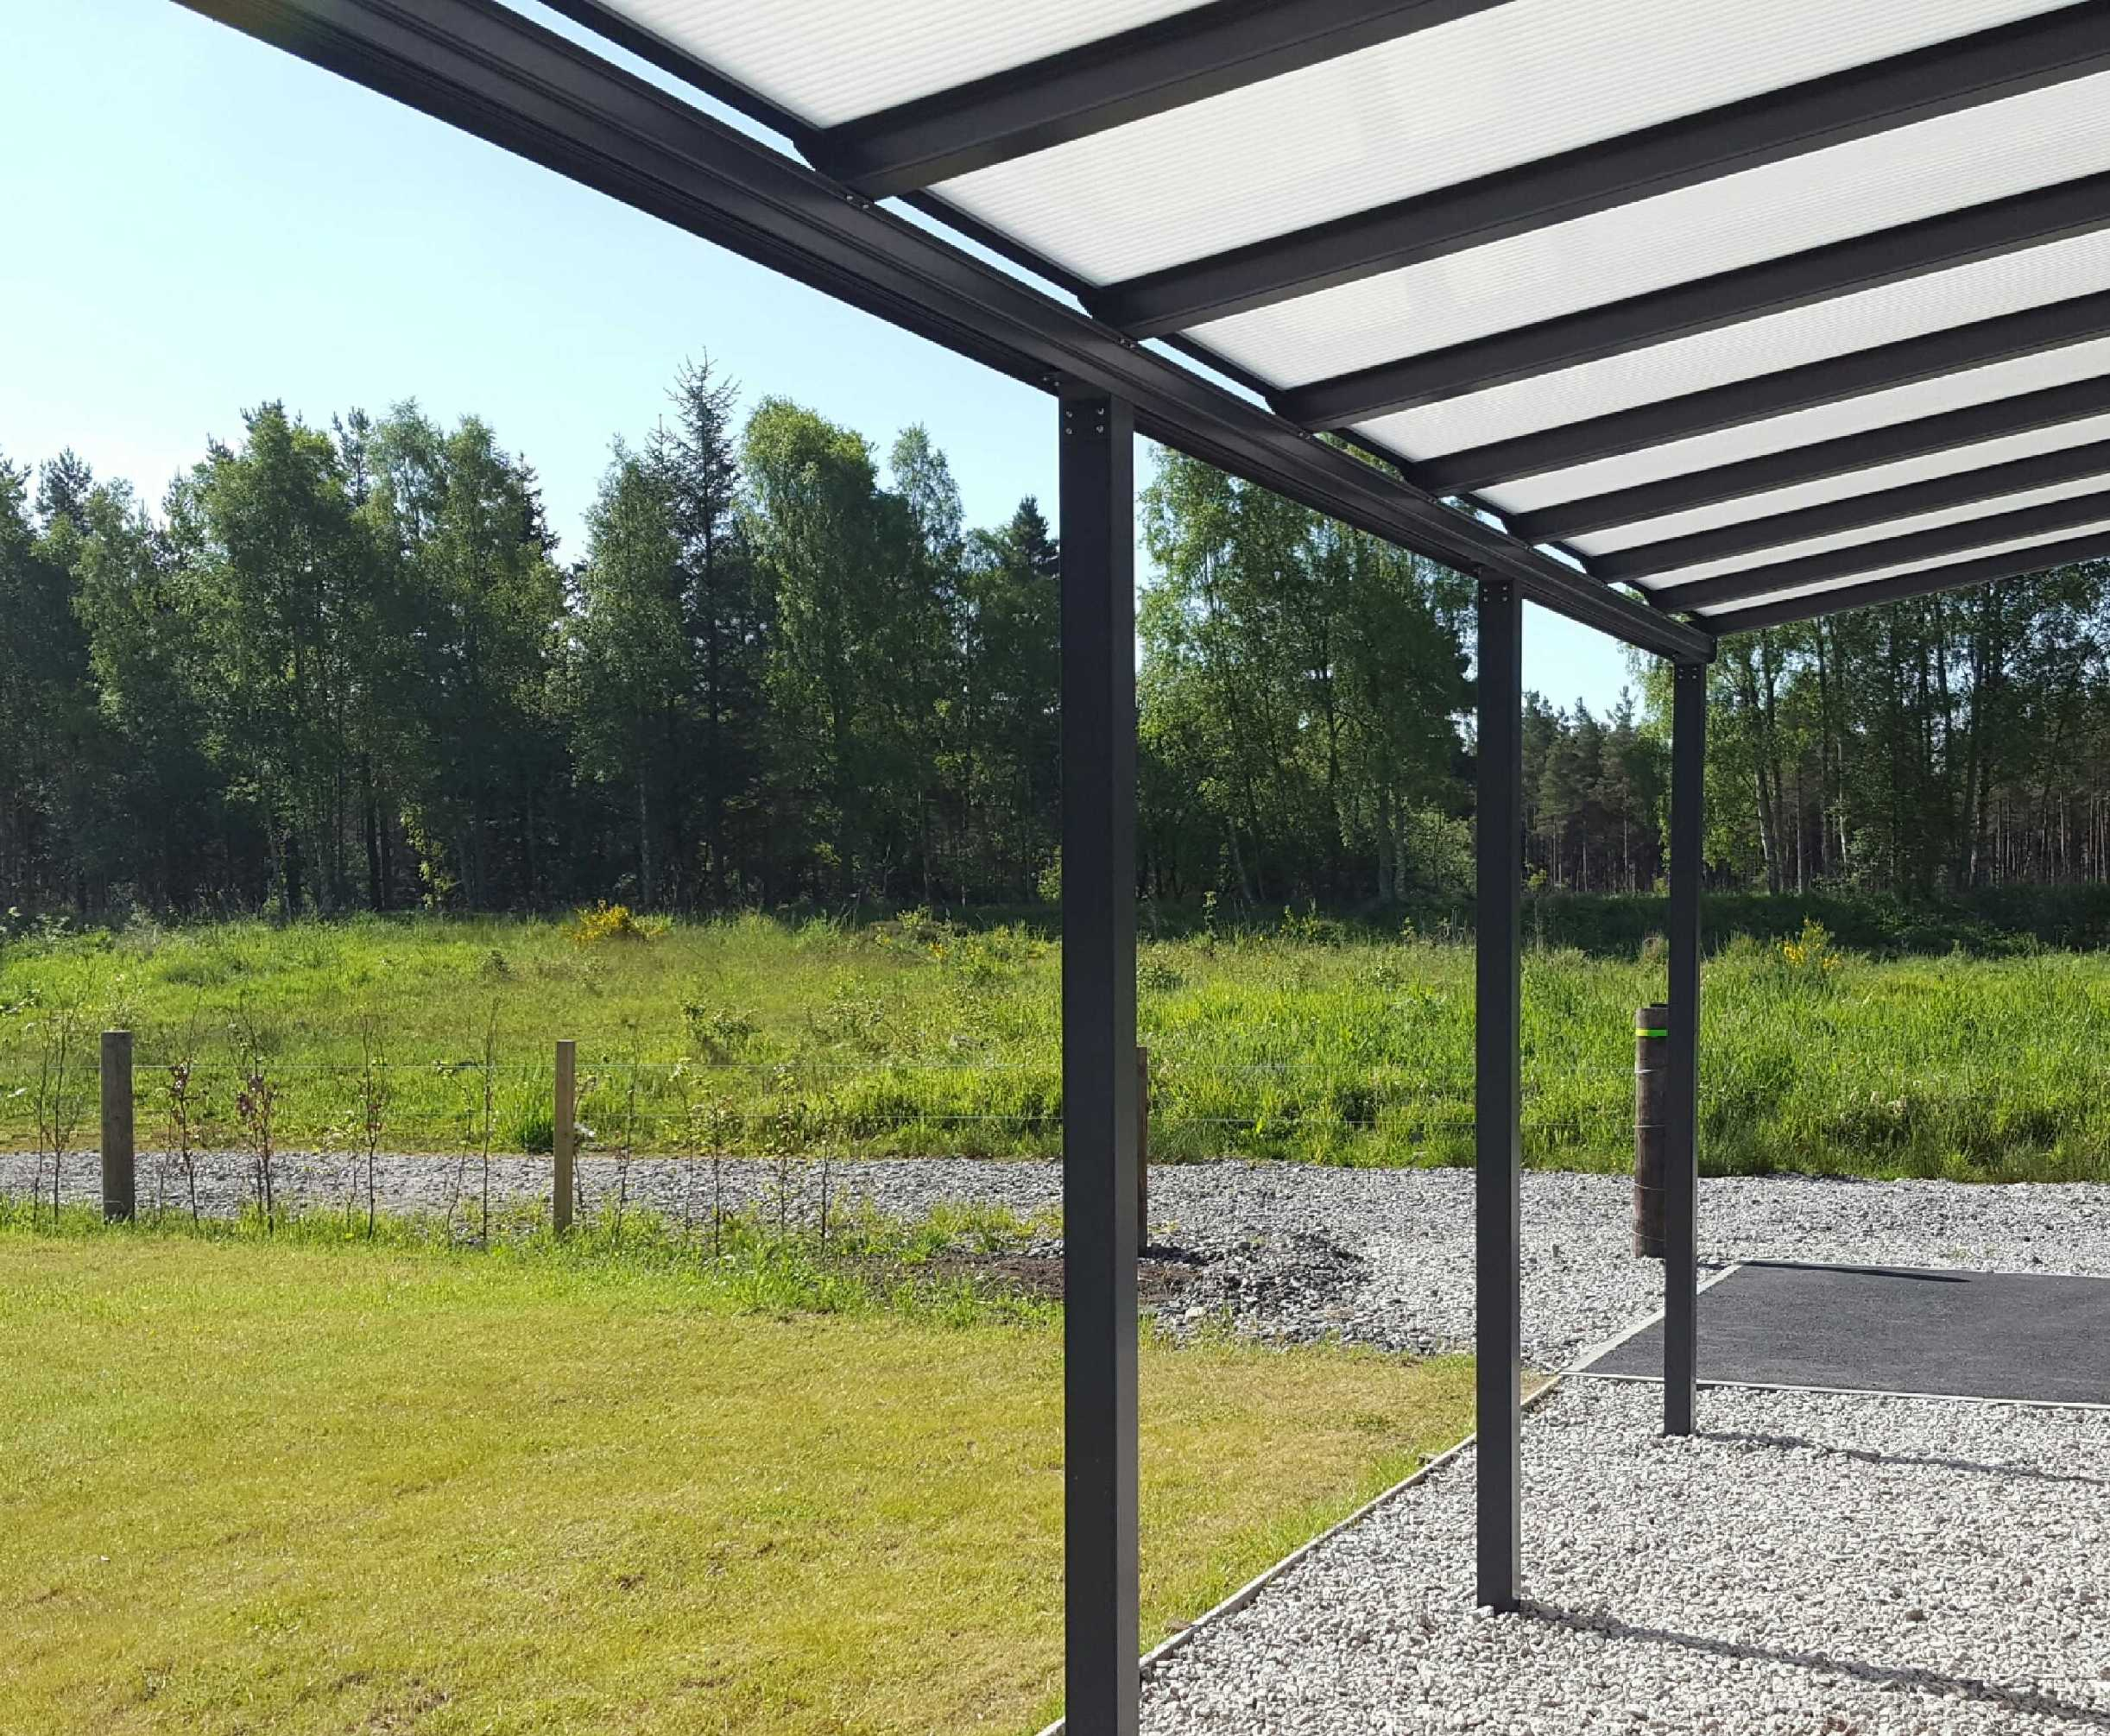 Omega Smart Lean-To Canopy, Anthracite Grey, 16mm Polycarbonate Glazing - 11.6m (W) x 2.5m (P), (5) Supporting Posts